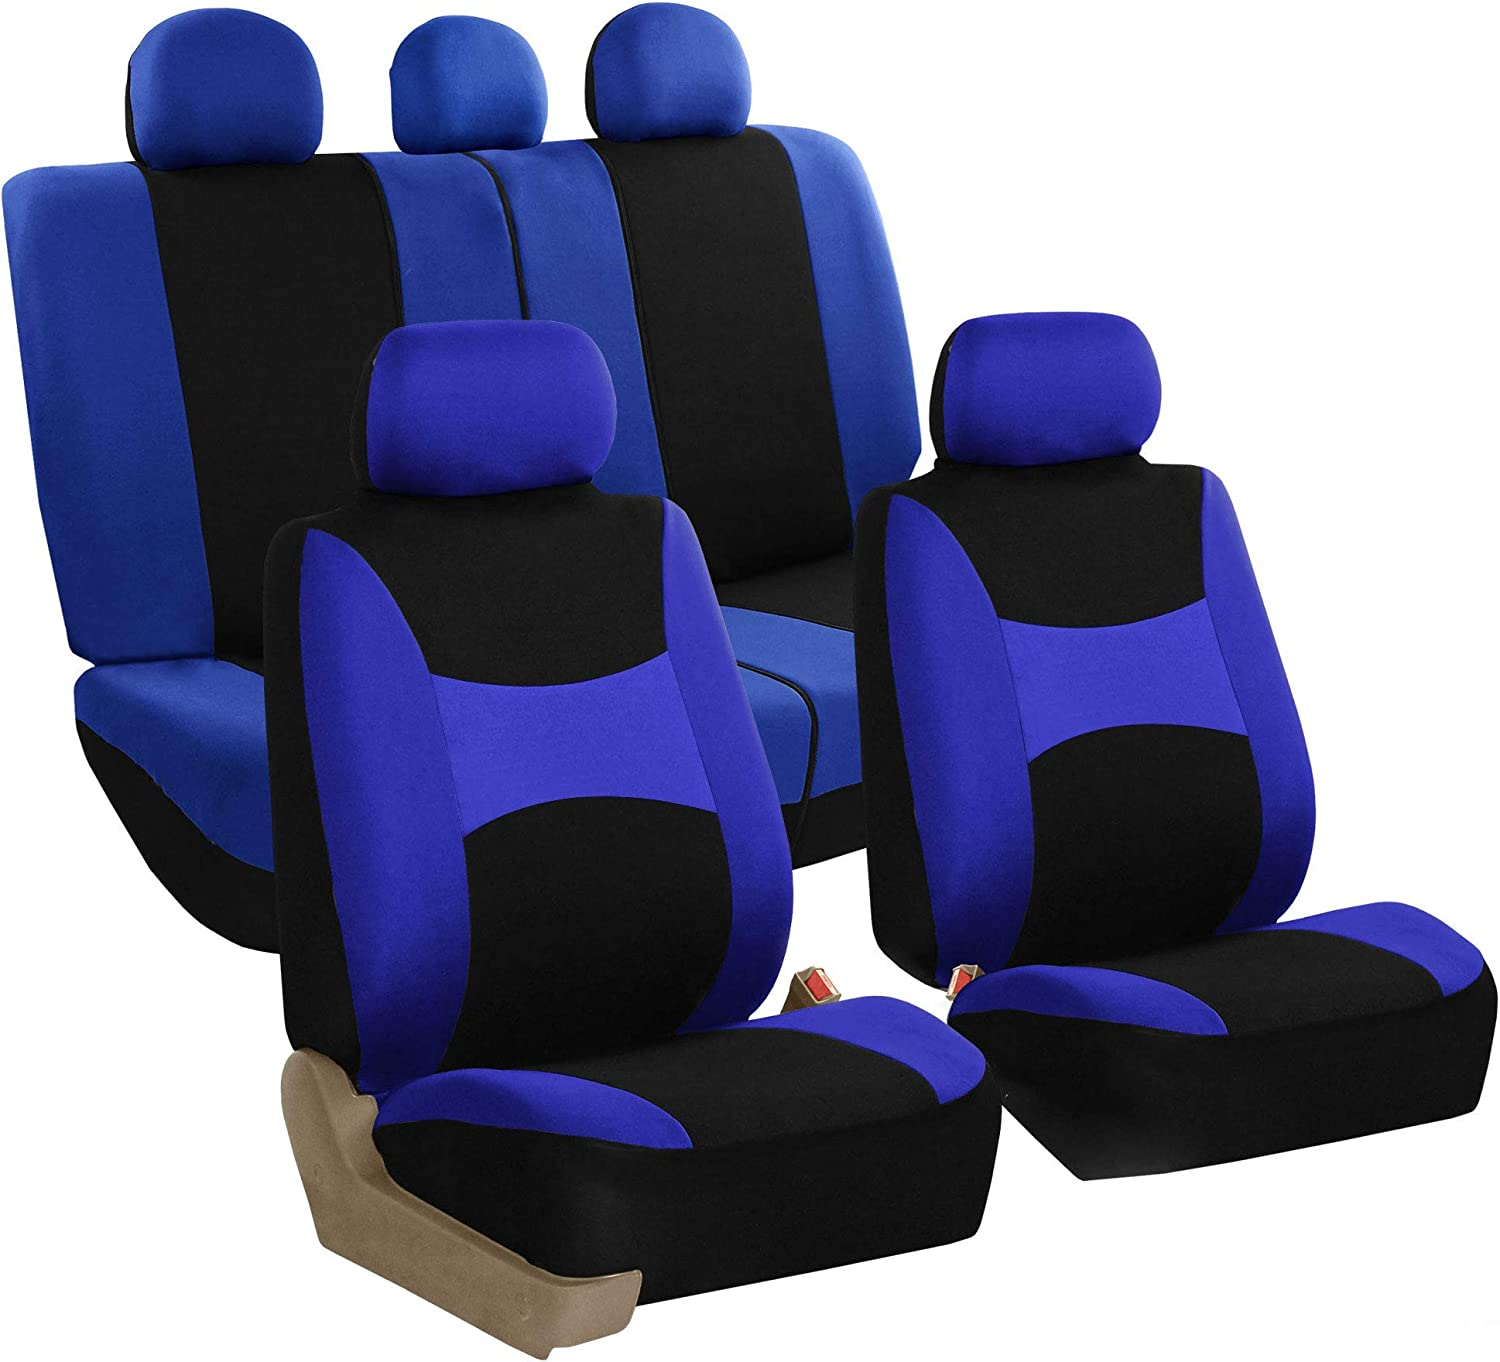 or Van Solid Black- Fit Most Car FH Group FB030115 Light /& Breezy Flat Cloth Full Set Car Seat Covers Set Airbag /& Split Ready w Truck Gift SUV